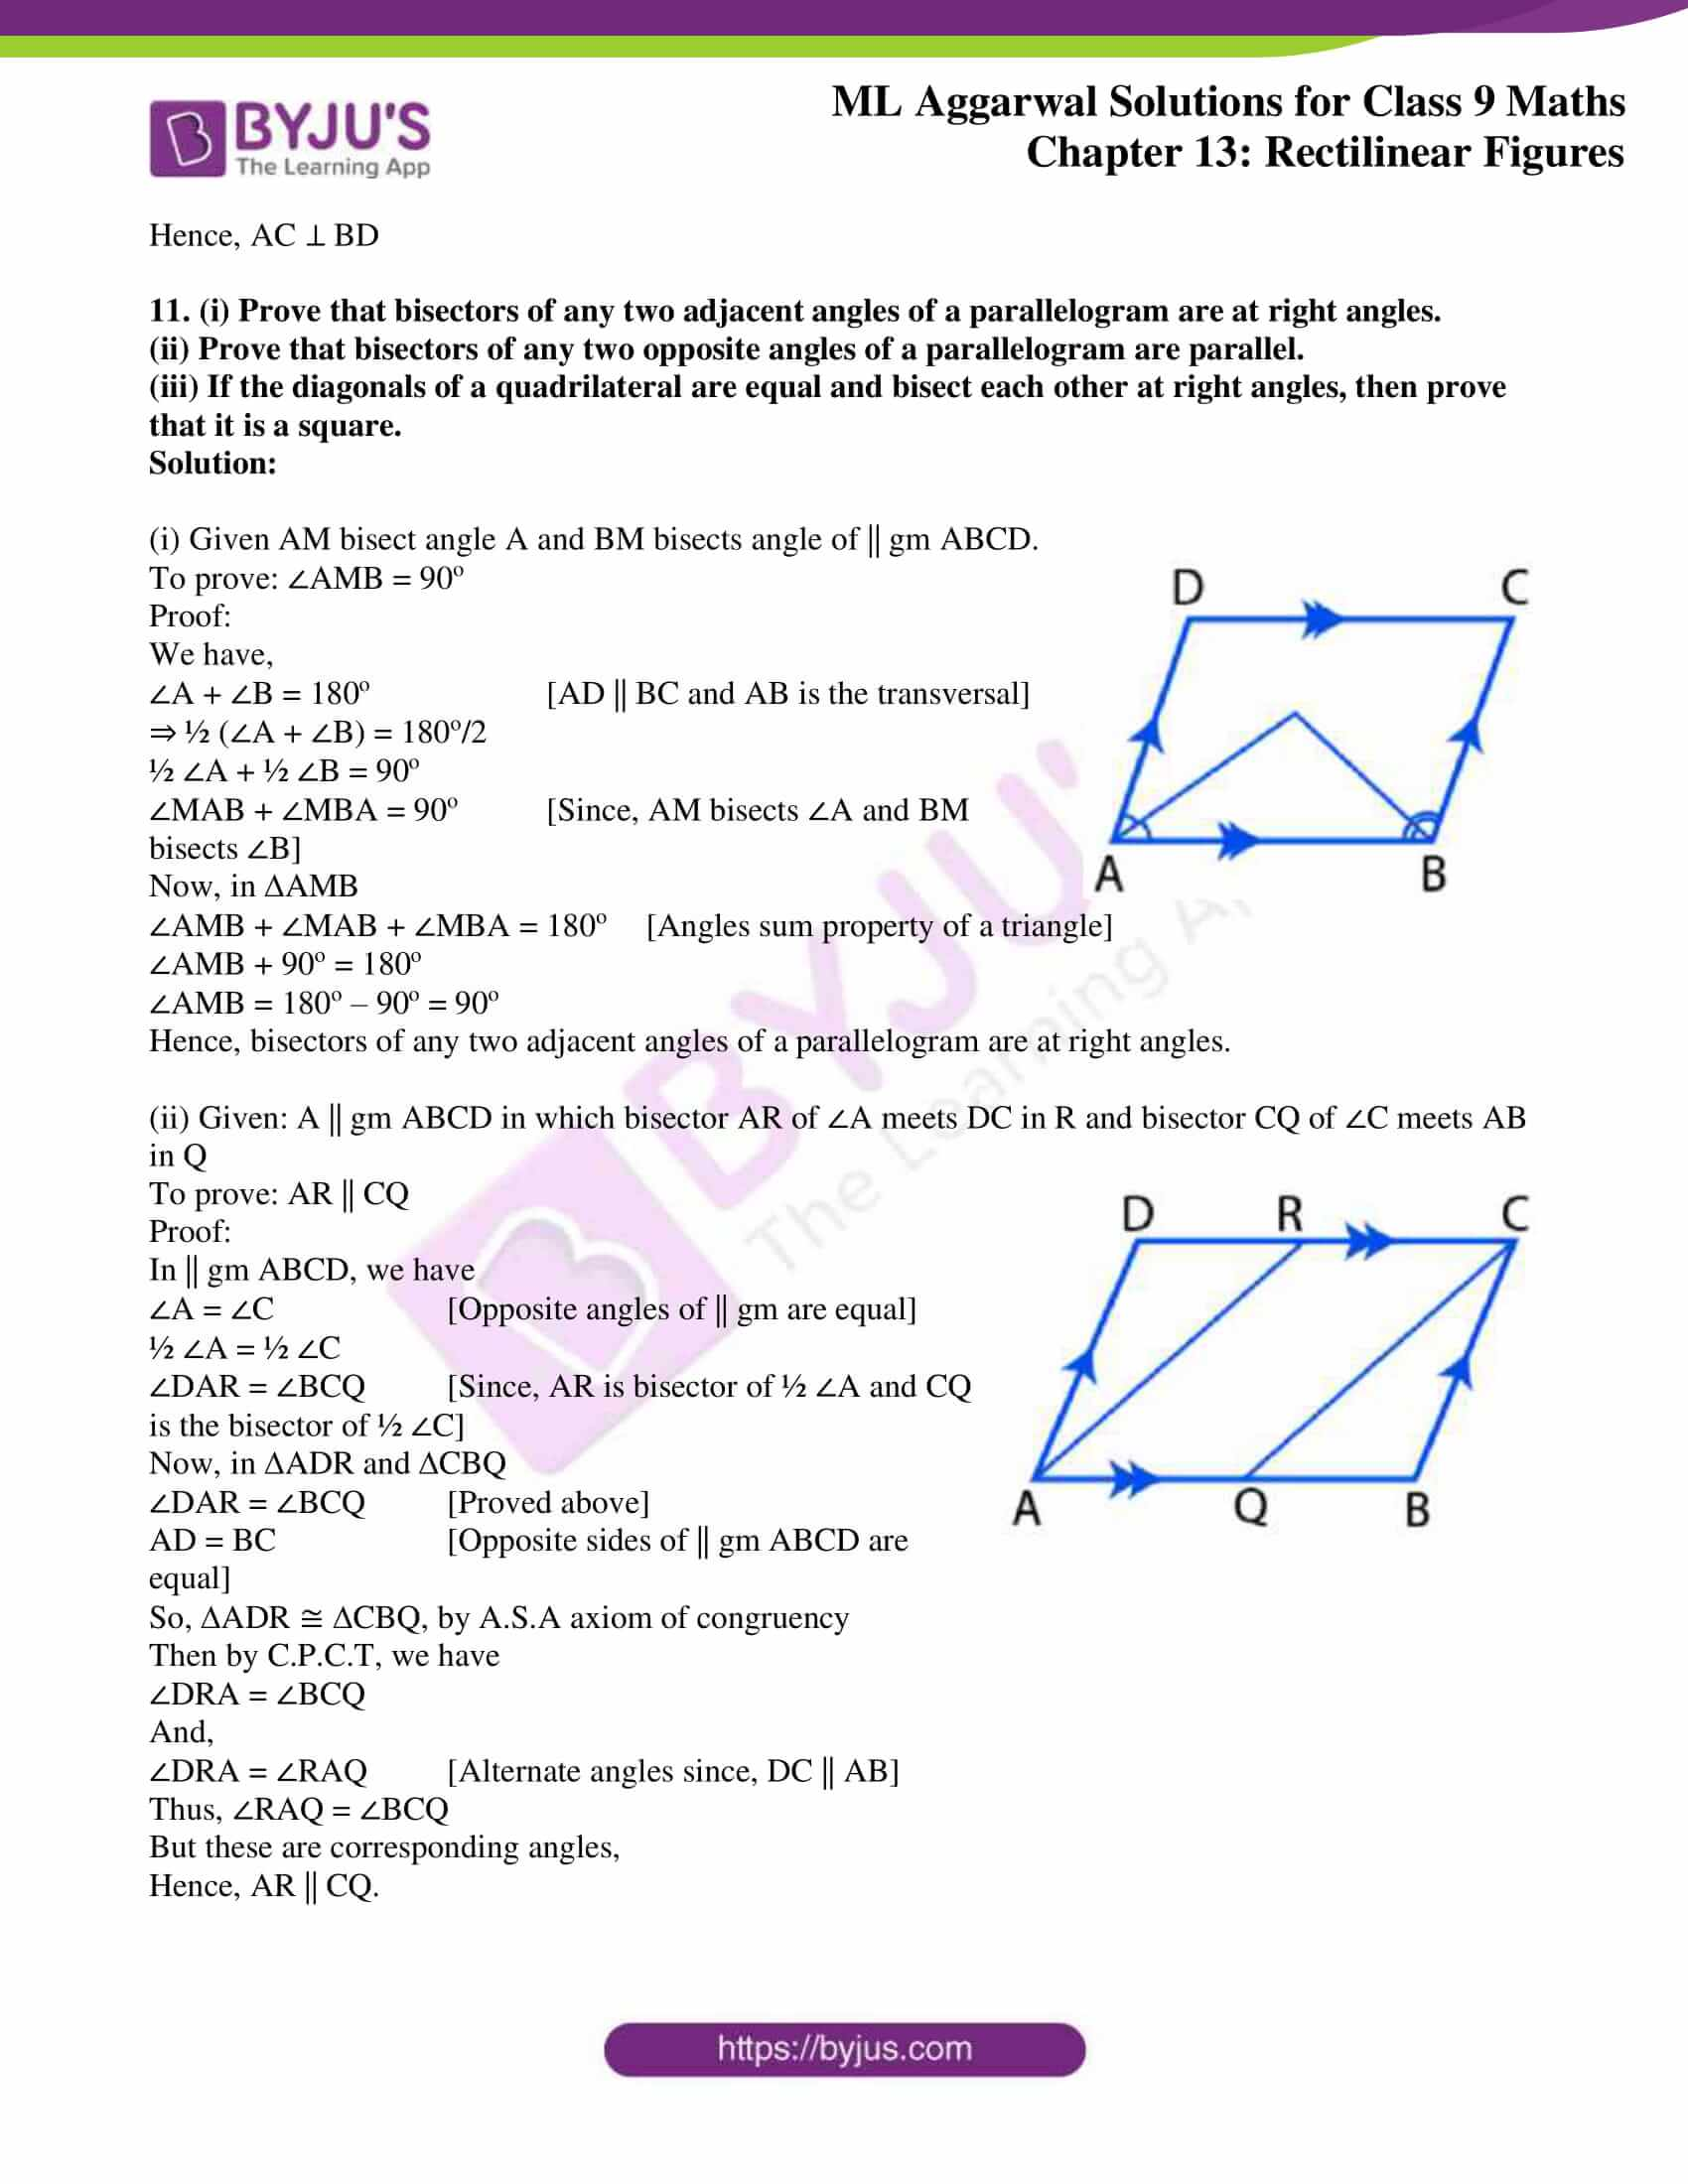 ml aggarwal solutions for class 9 maths chapter 13 11